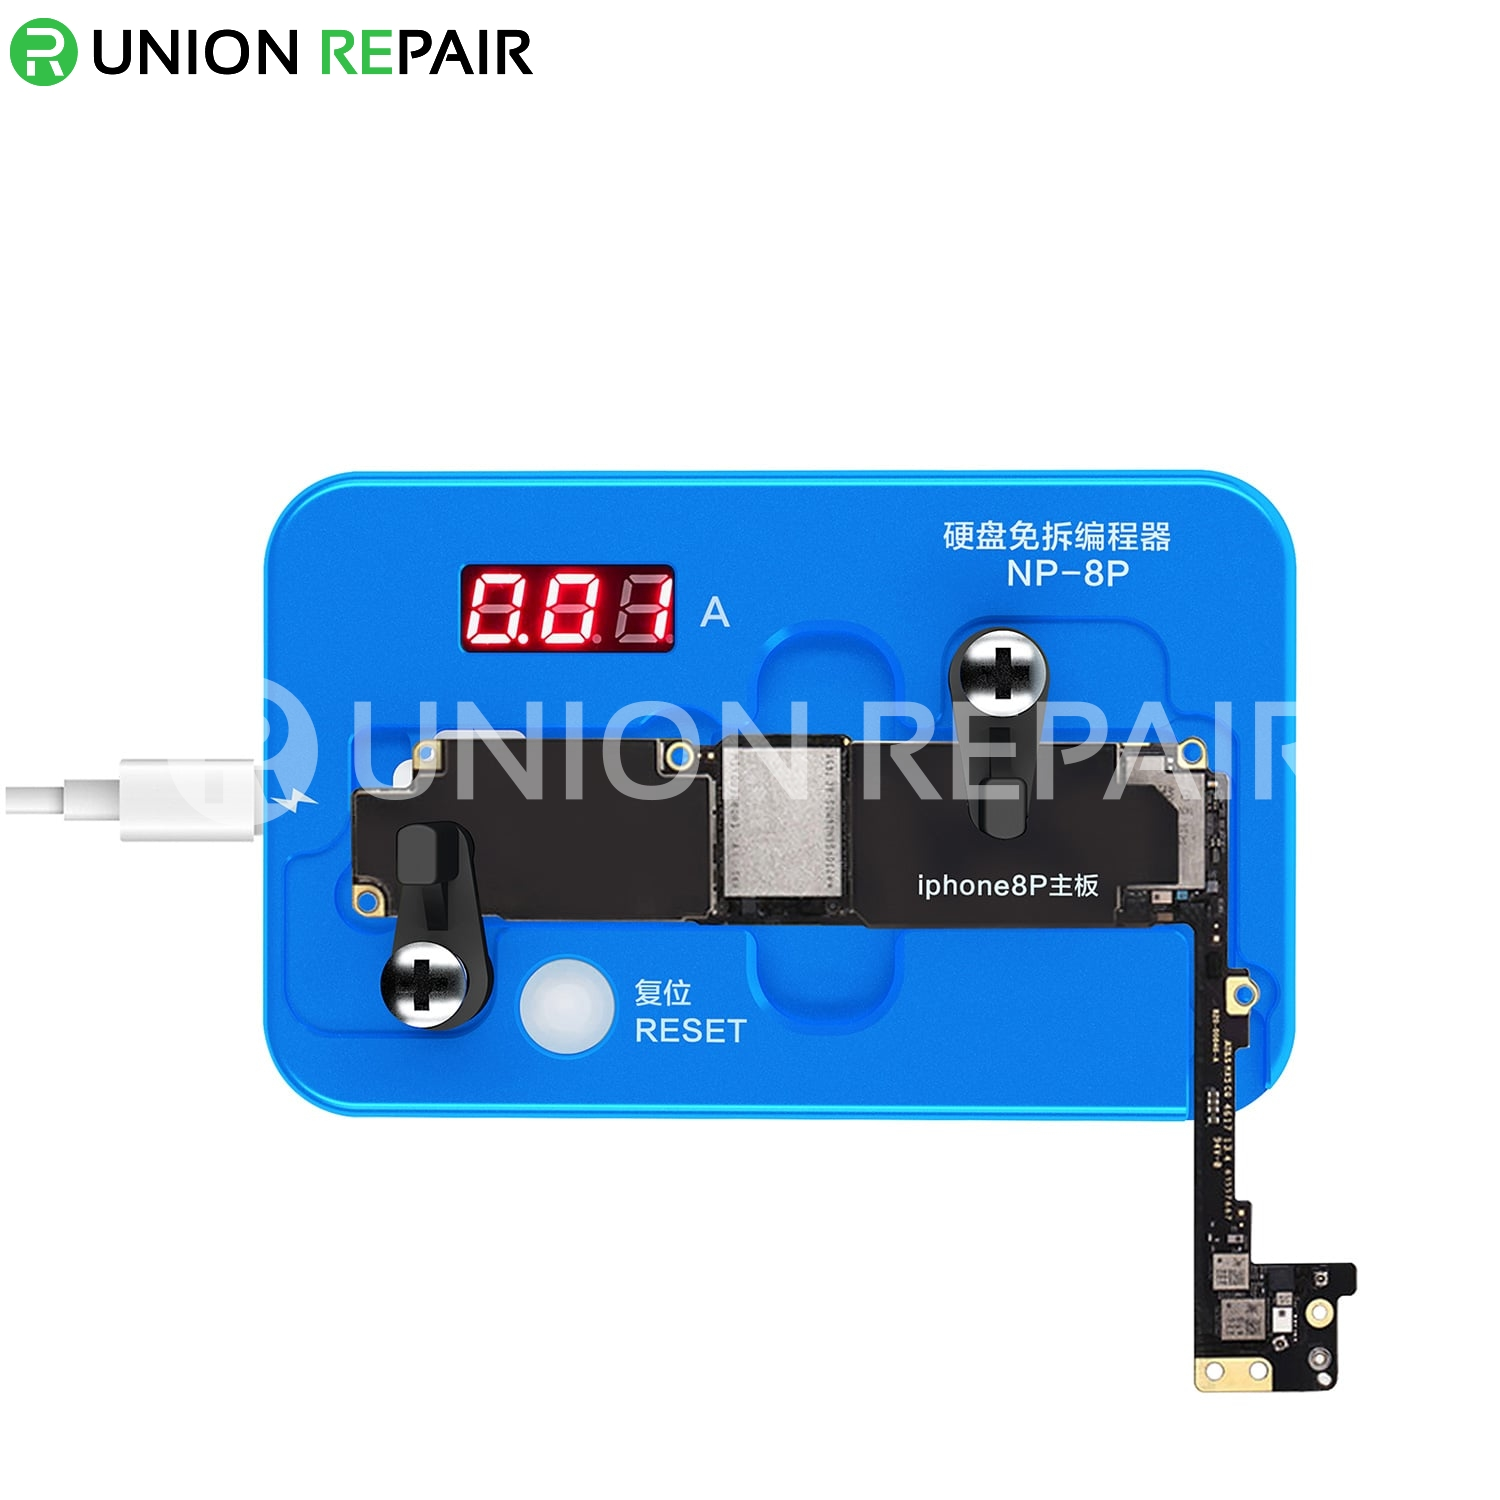 JC NP8P Nand Non-Removal Programmer for iPhone 8 Plus